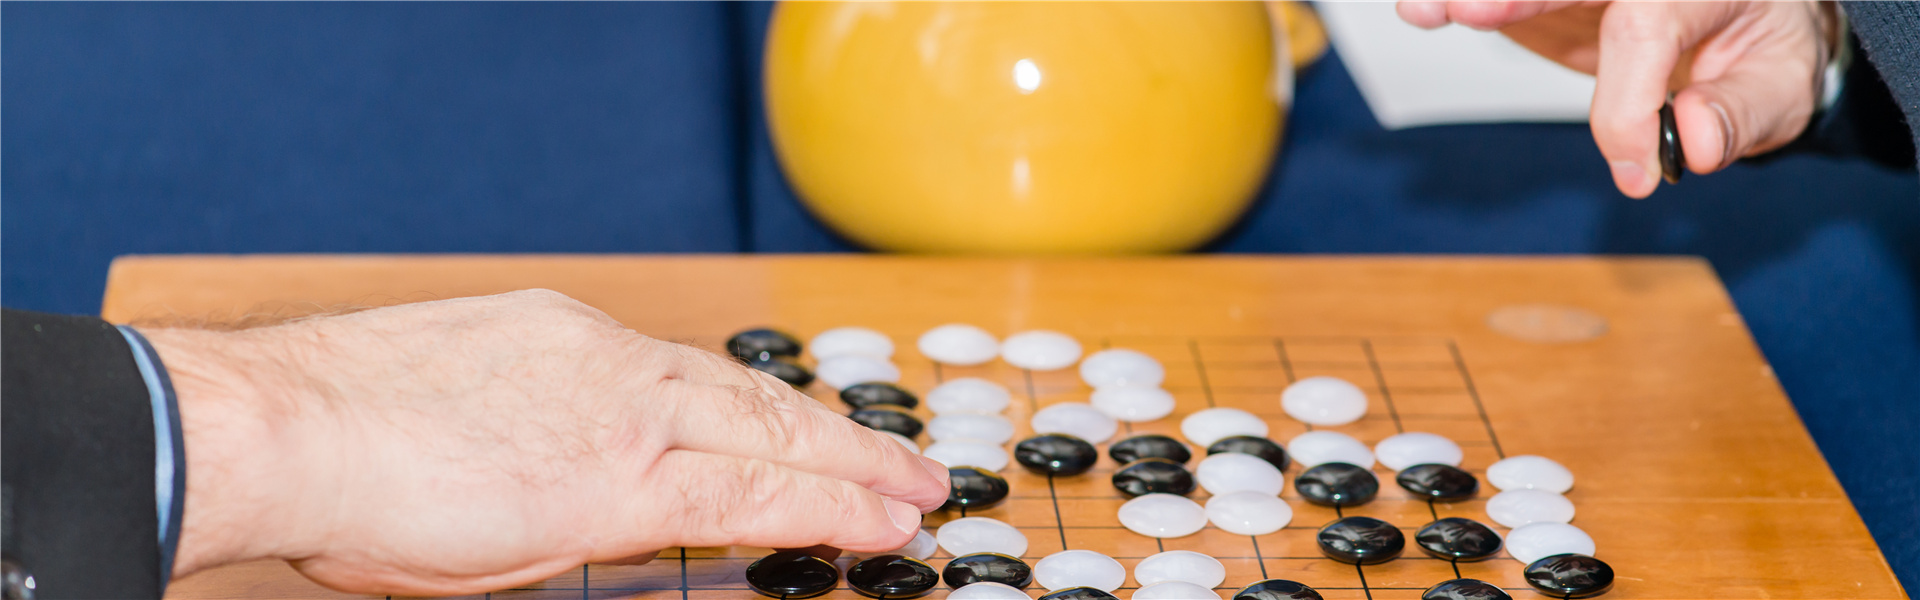 Quzhou hosts Chinese Go championship finals